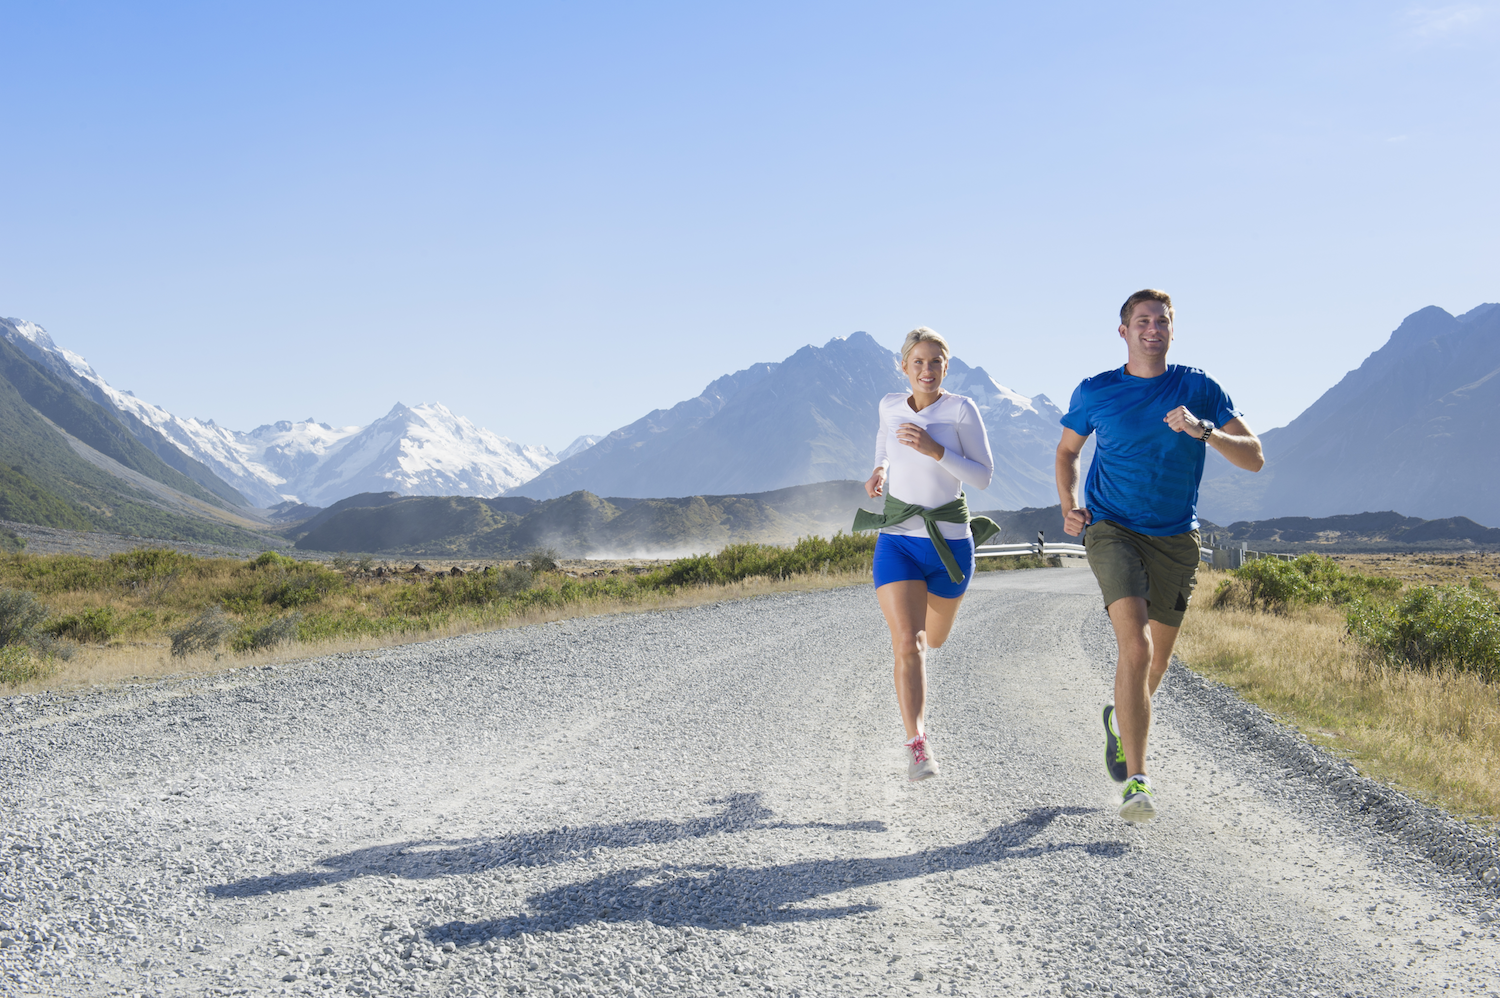 Two people running in the mountains